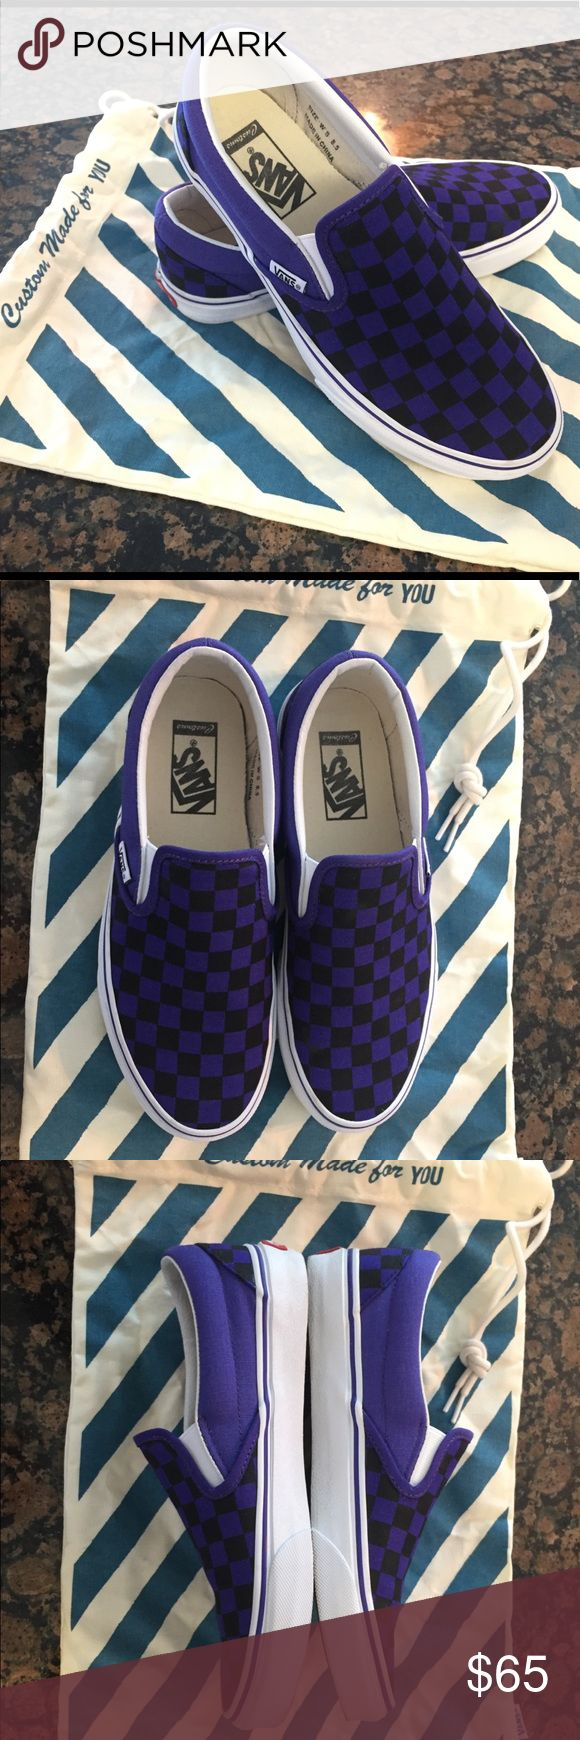 Vans Classic Checkerboard Slip-On Purple These Custom Vans Classic Slip-On in Liberty Purple and Black have a low profile, slip-on canvas upper with all-over checker print, elastic side accents, Vans flag label and Vans original Waffle Outsole.   Women's size 8.5  I wore these shoes once - they are in nearly like new condition. Vans Shoes Sneakers